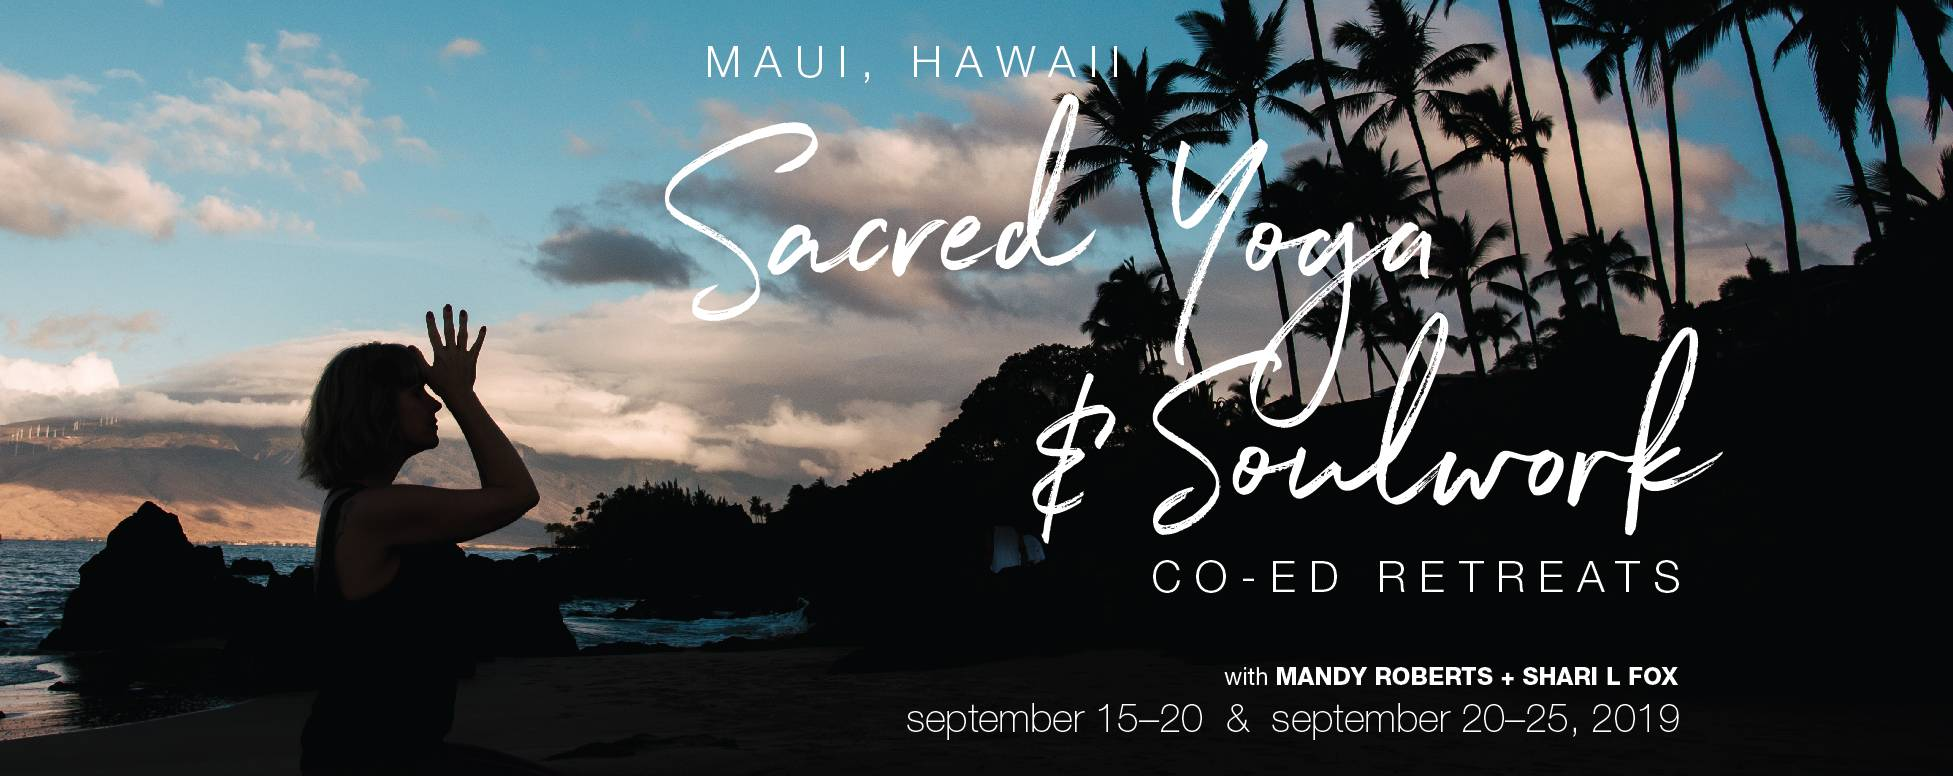 maui-hawaii-soulwork-retreat-2019